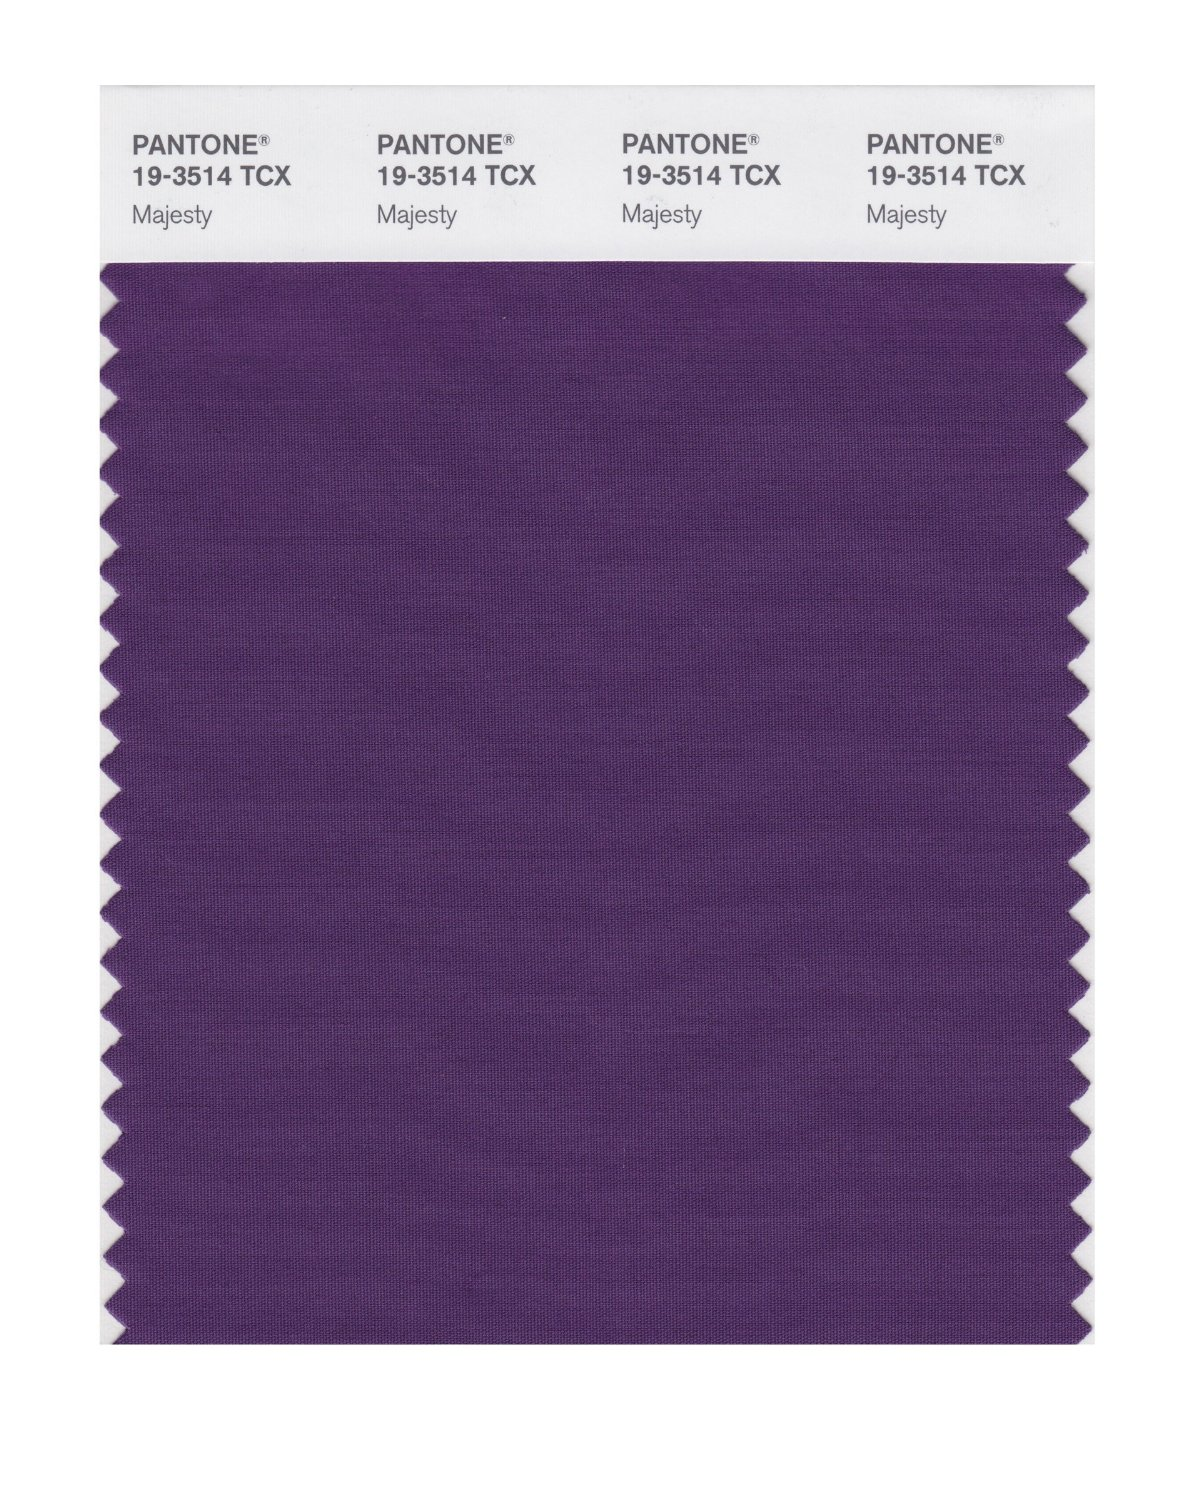 Pantone Smart Swatch 19-3514 Majesty